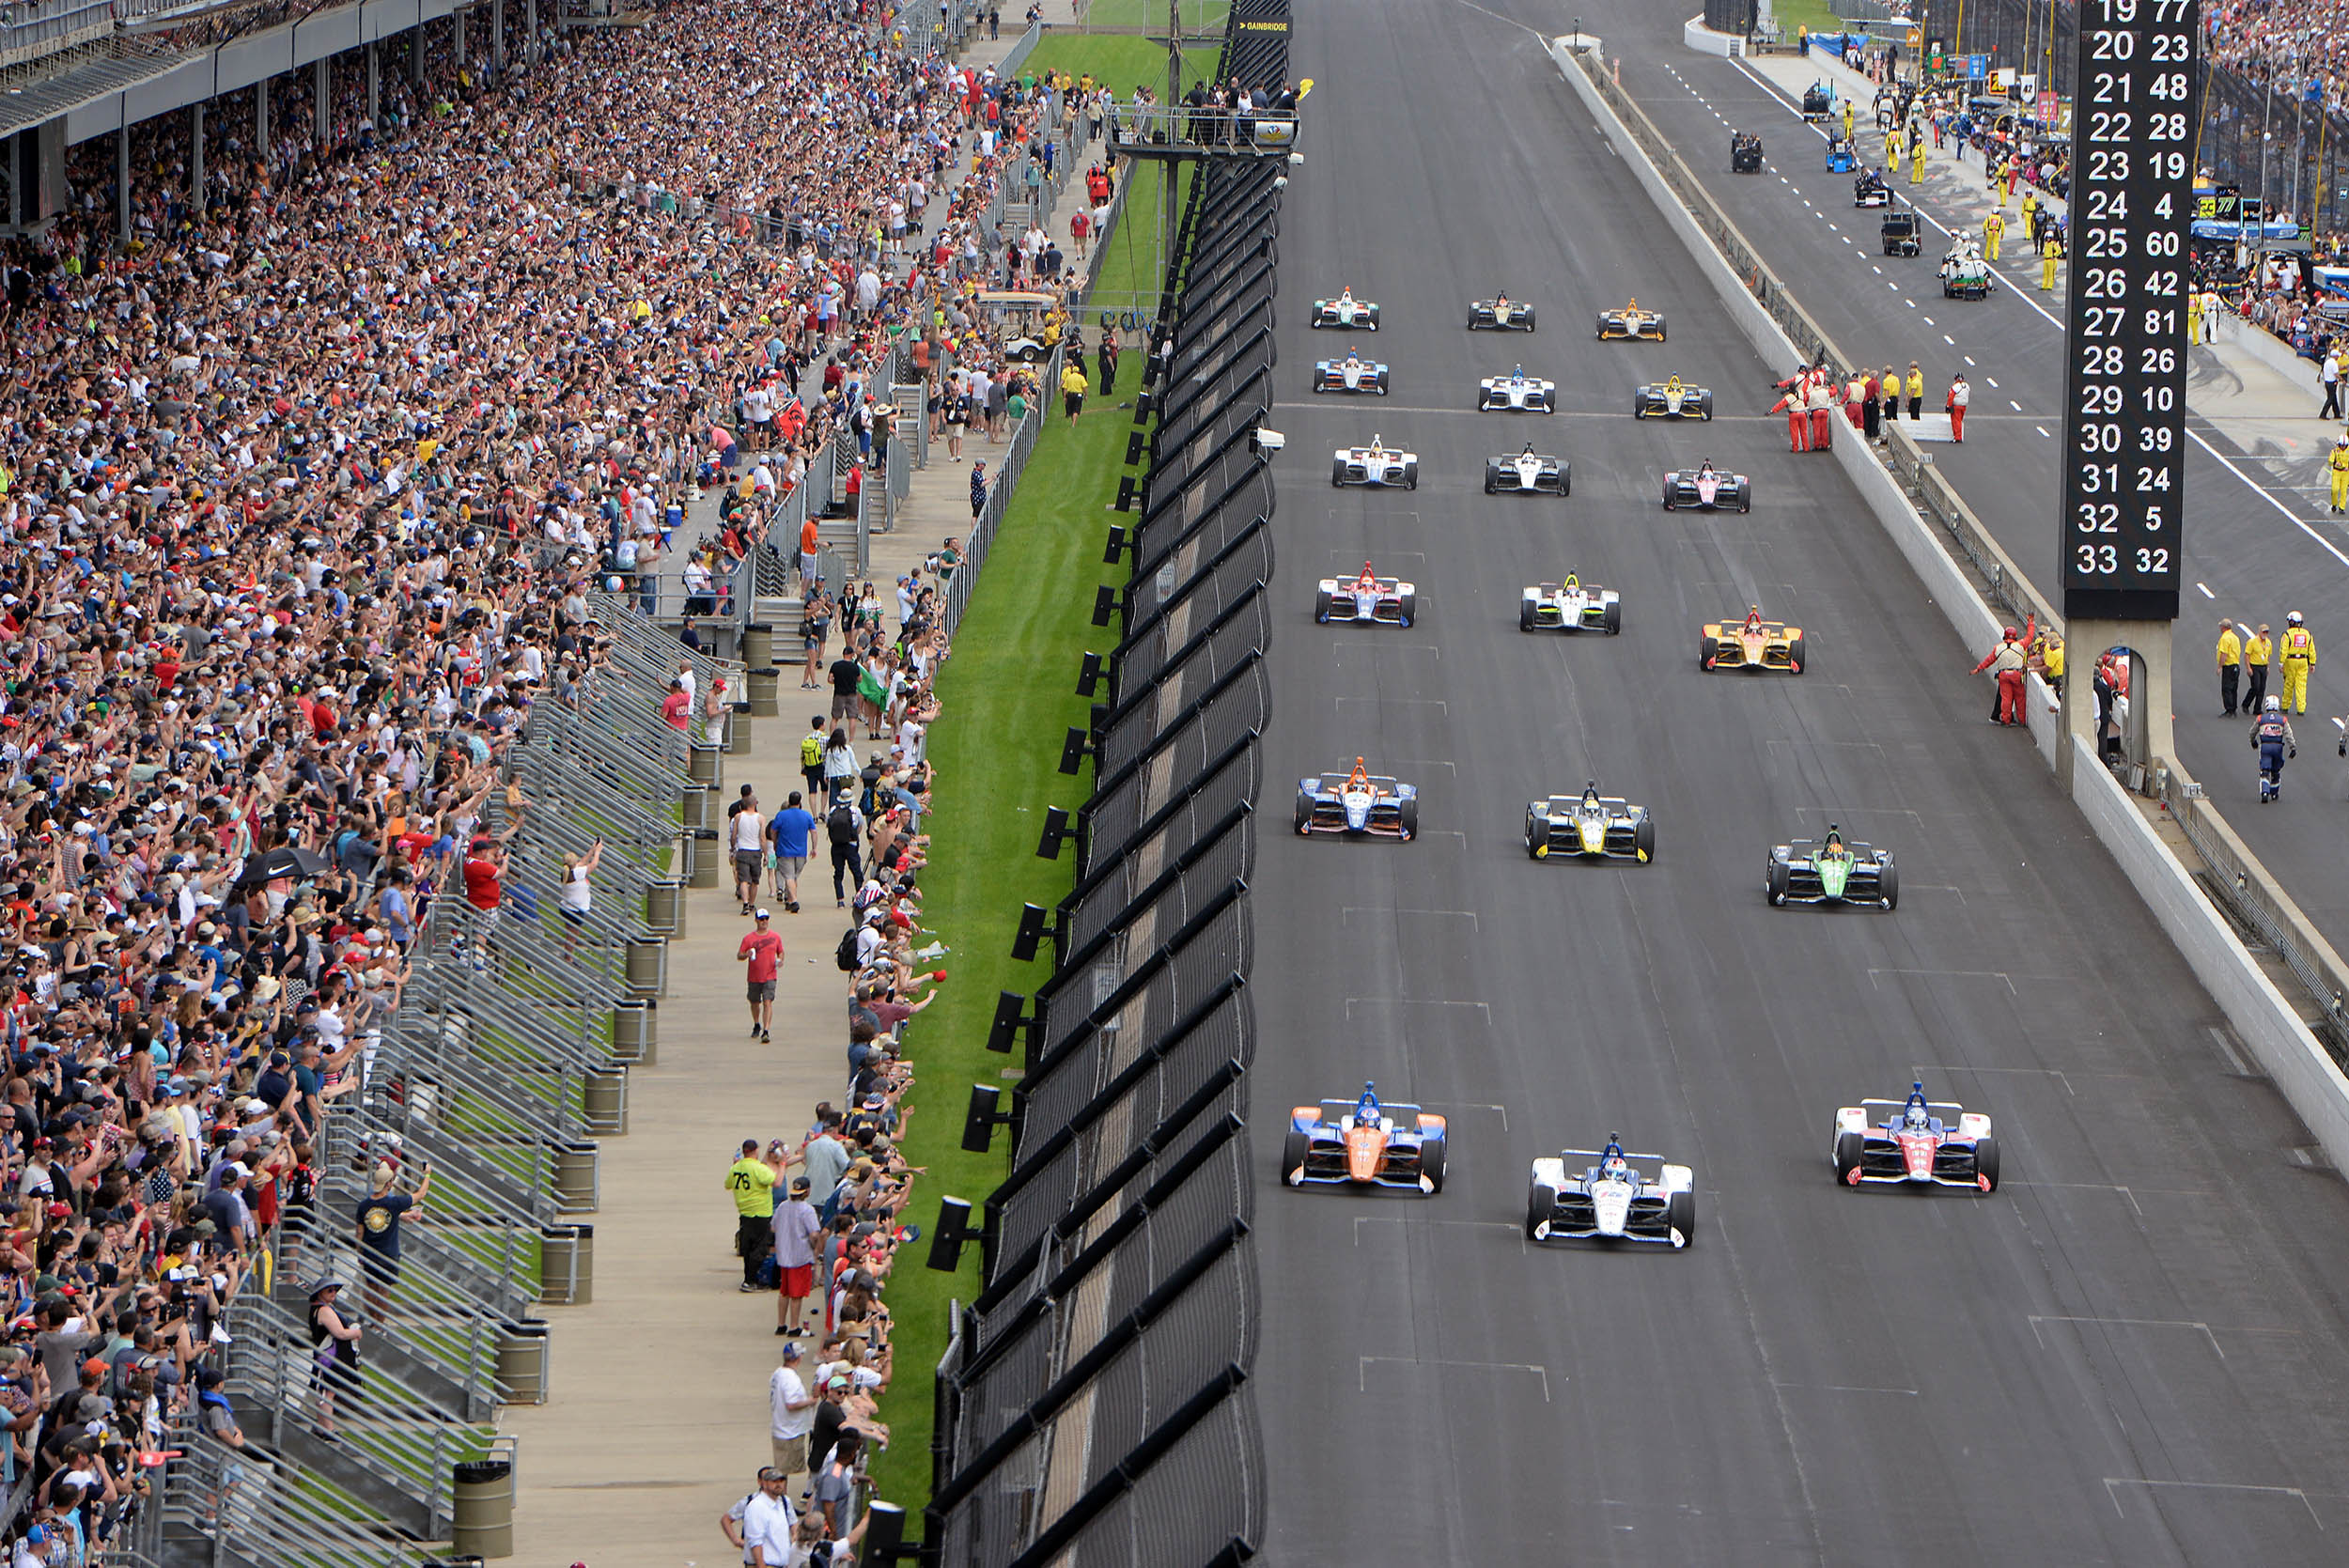 Fans attend the NTT IndyCar Series 103rd running of the Indianapolis 500 on May 26, 2019.